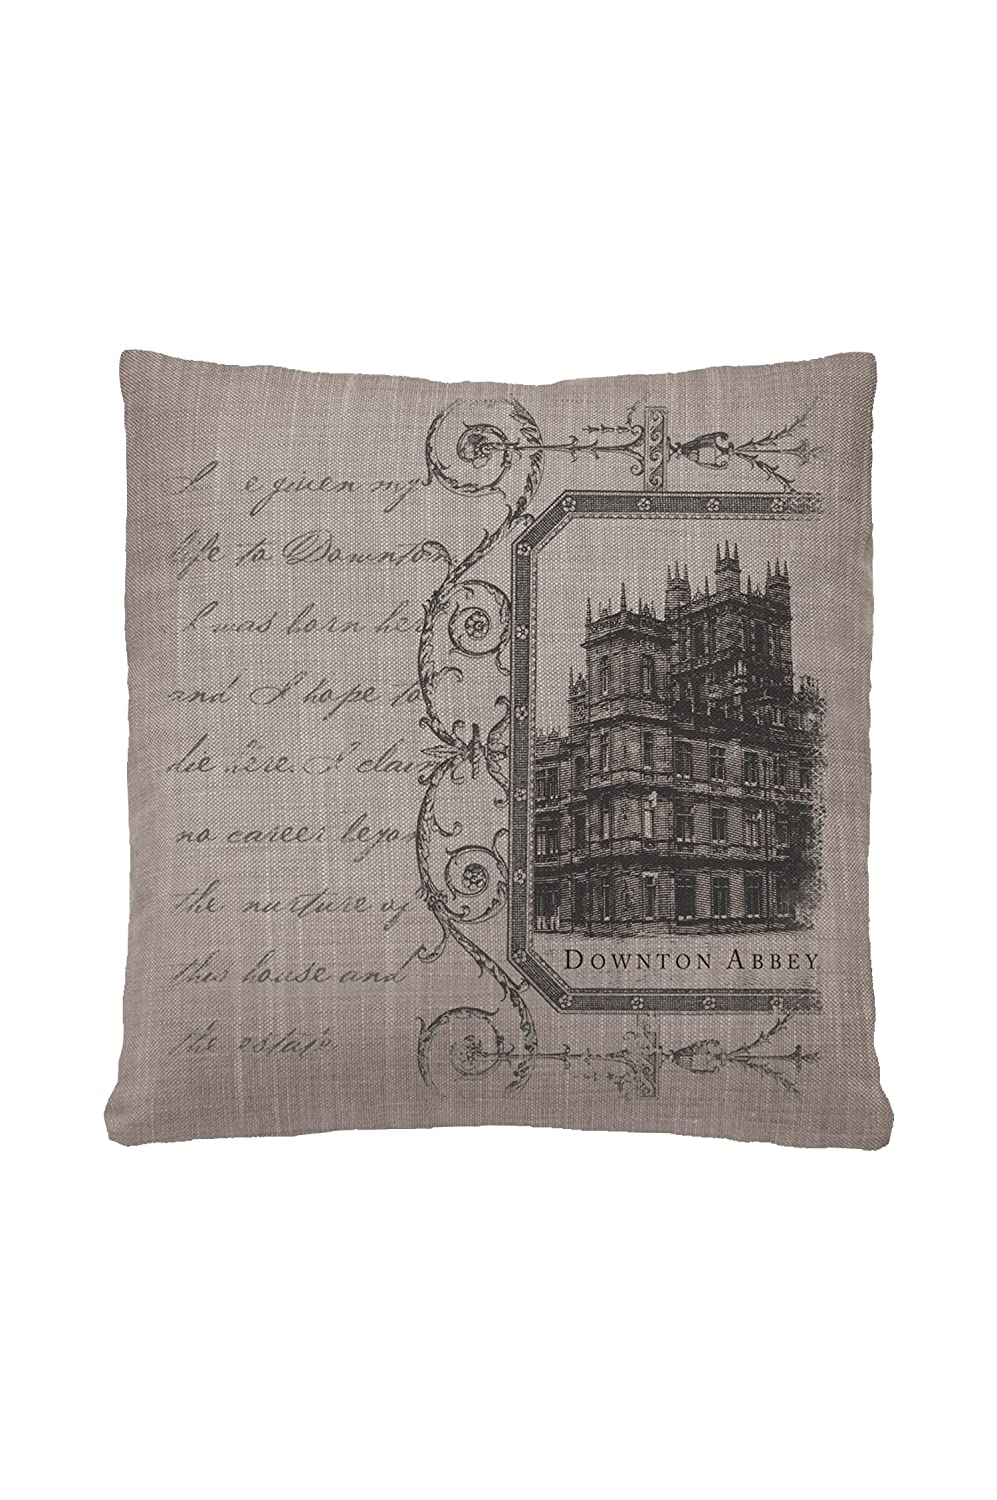 Heritage Lace Downton Abbey Castle Script 18-Inch by 18-Inch Gray Pillow Cover